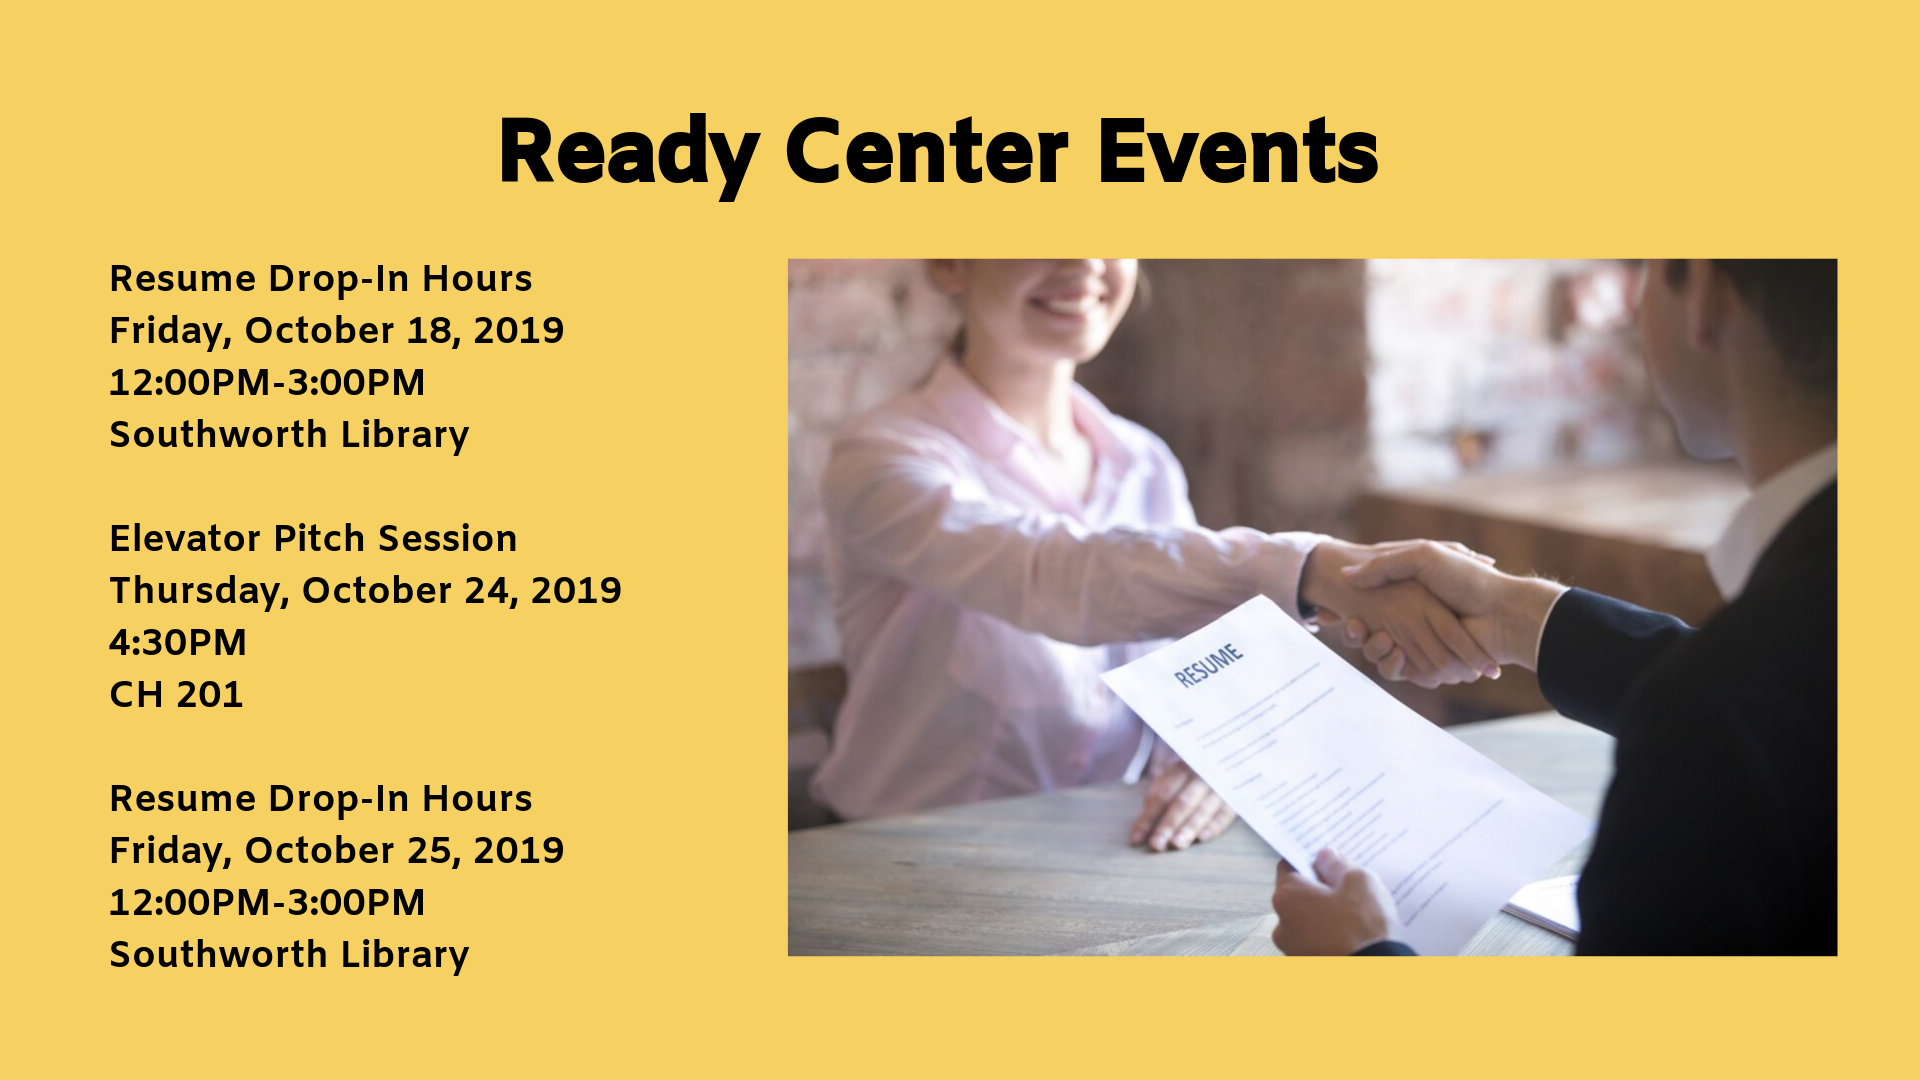 Ready Center Events. Resume Drop-In Hours Friday, October 18, 2019               12:00PM-3:00PM             Southworth Library  Elevator Pitch Session     Thursday, October 24, 2019          4:30PM  CH 201  Resume Drop-In Hours   Friday, October 25, 2019               12:00PM-3:00PM             Southworth Library